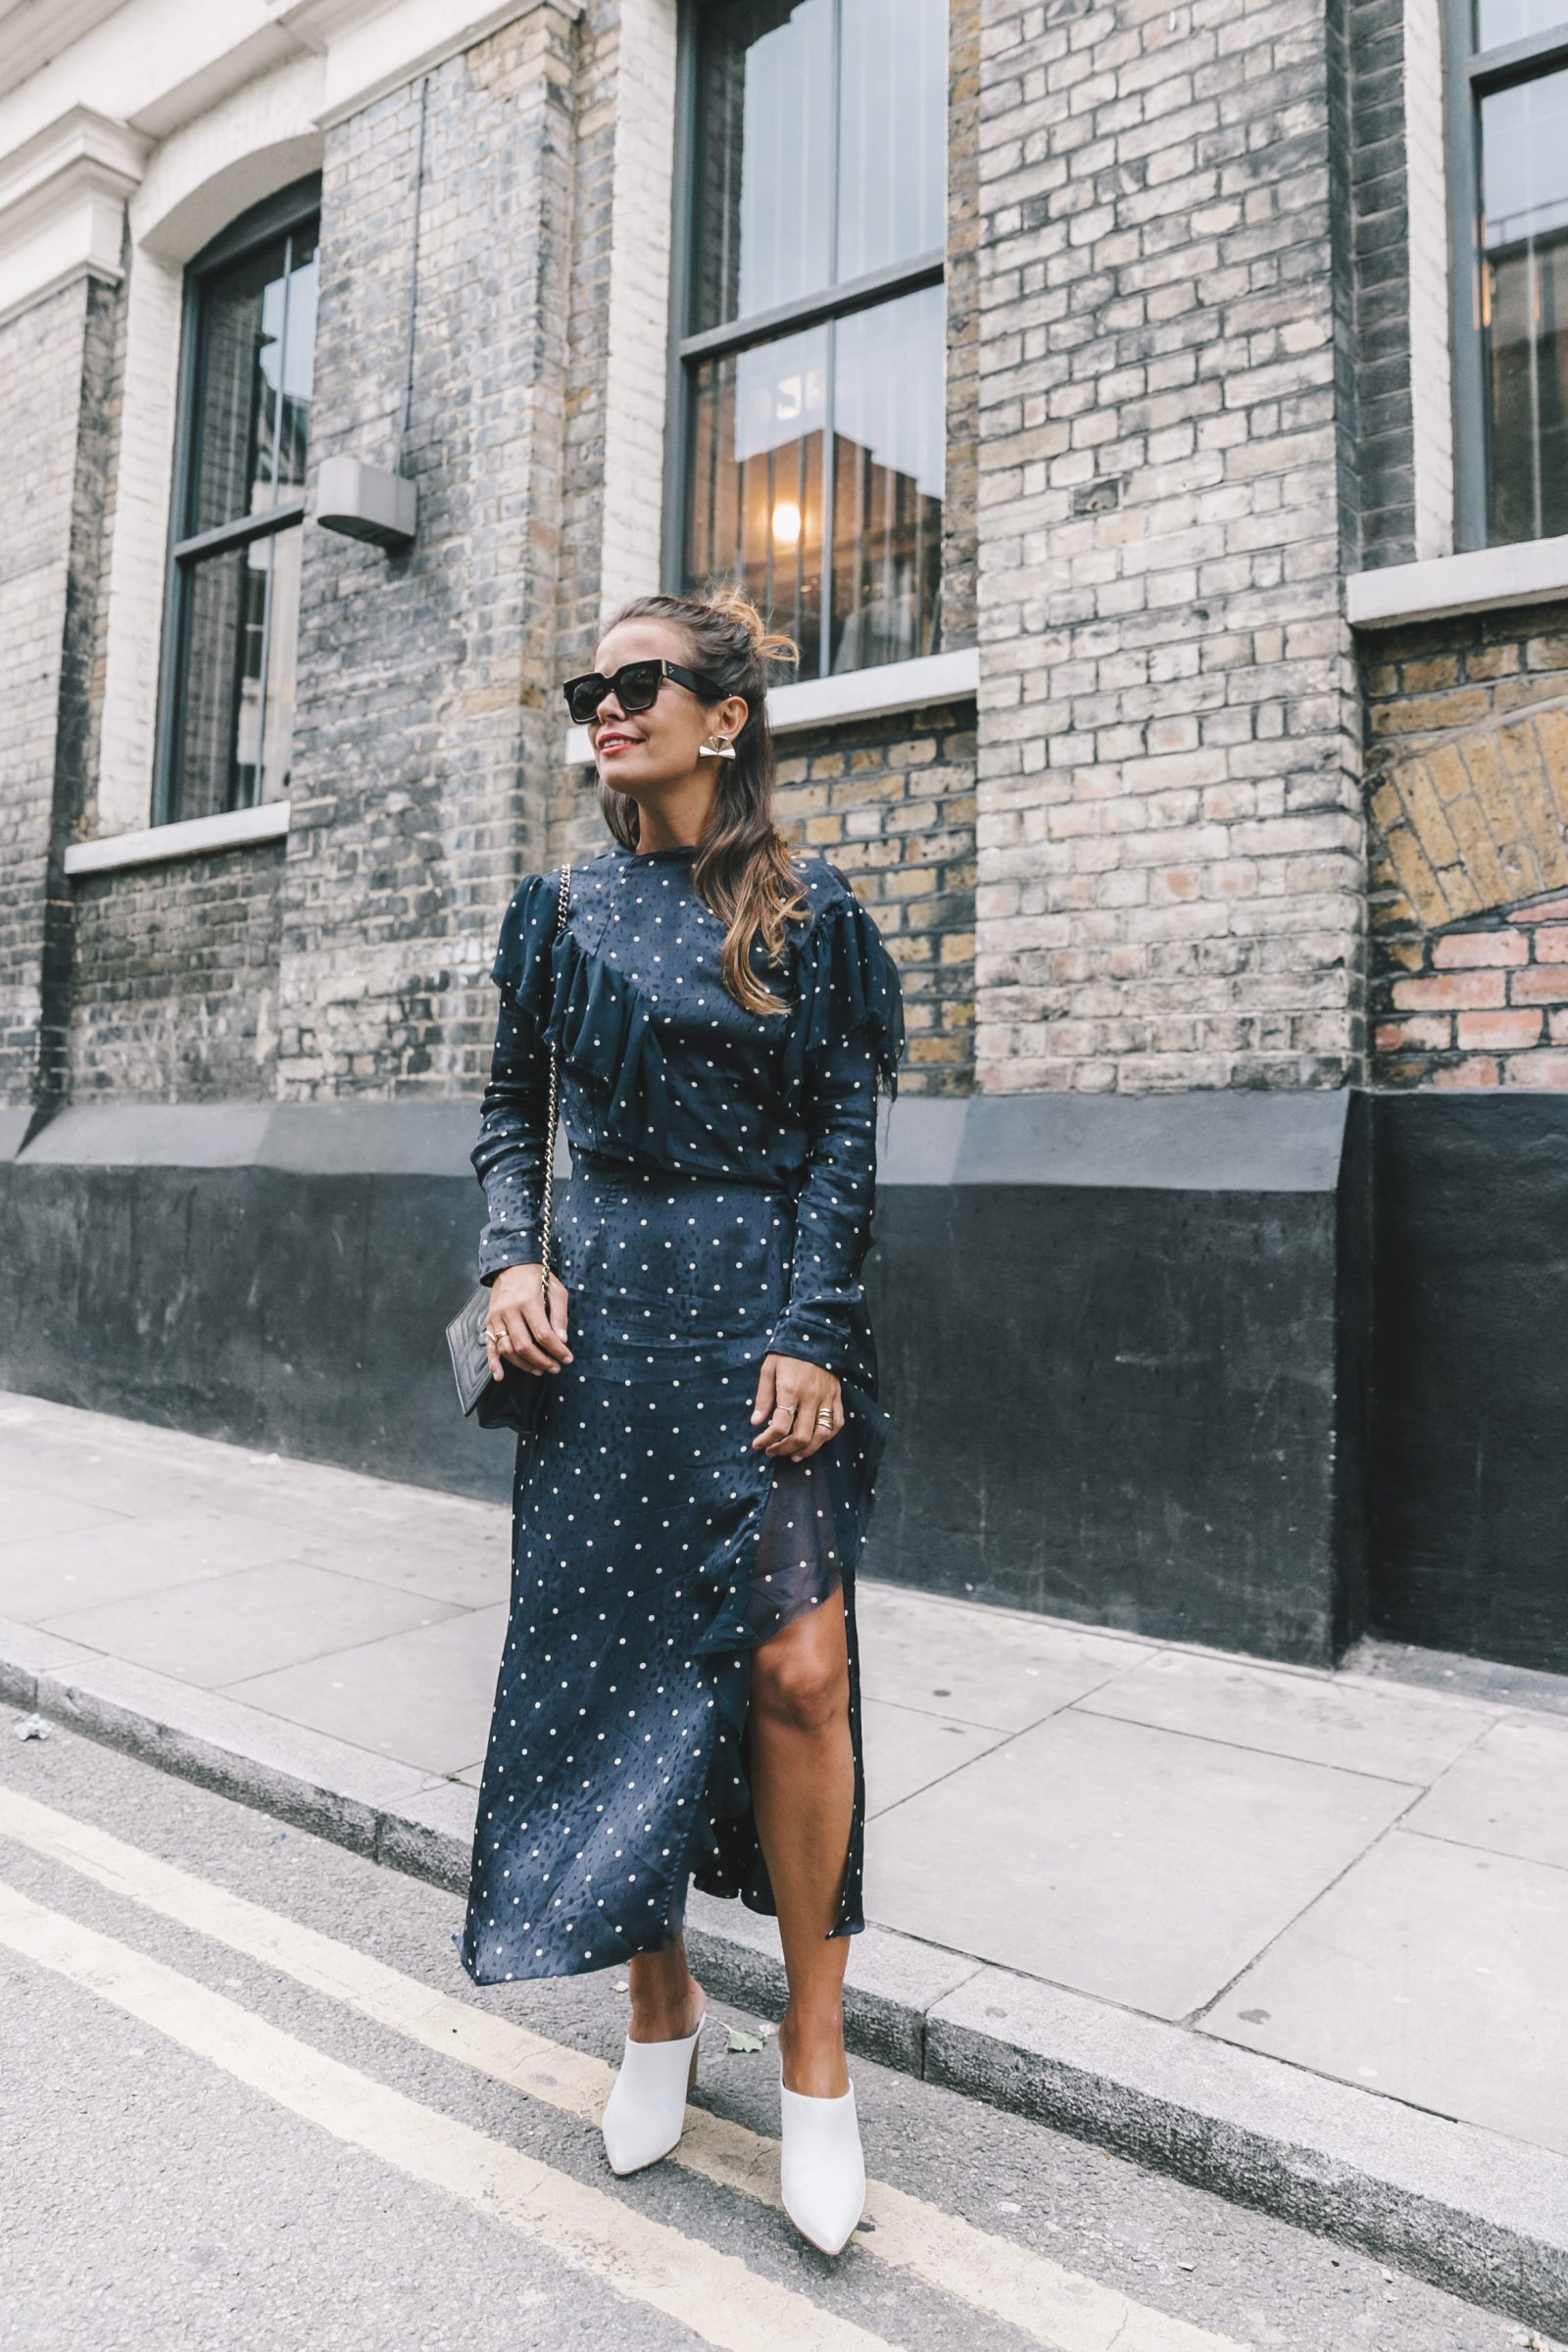 lfw-london_fashion_week_ss17-street_style-outfits-collage_vintage-vintage-topshop_unique-polka_dot_dress-white_mules-topshop_boutique-adenorah-45